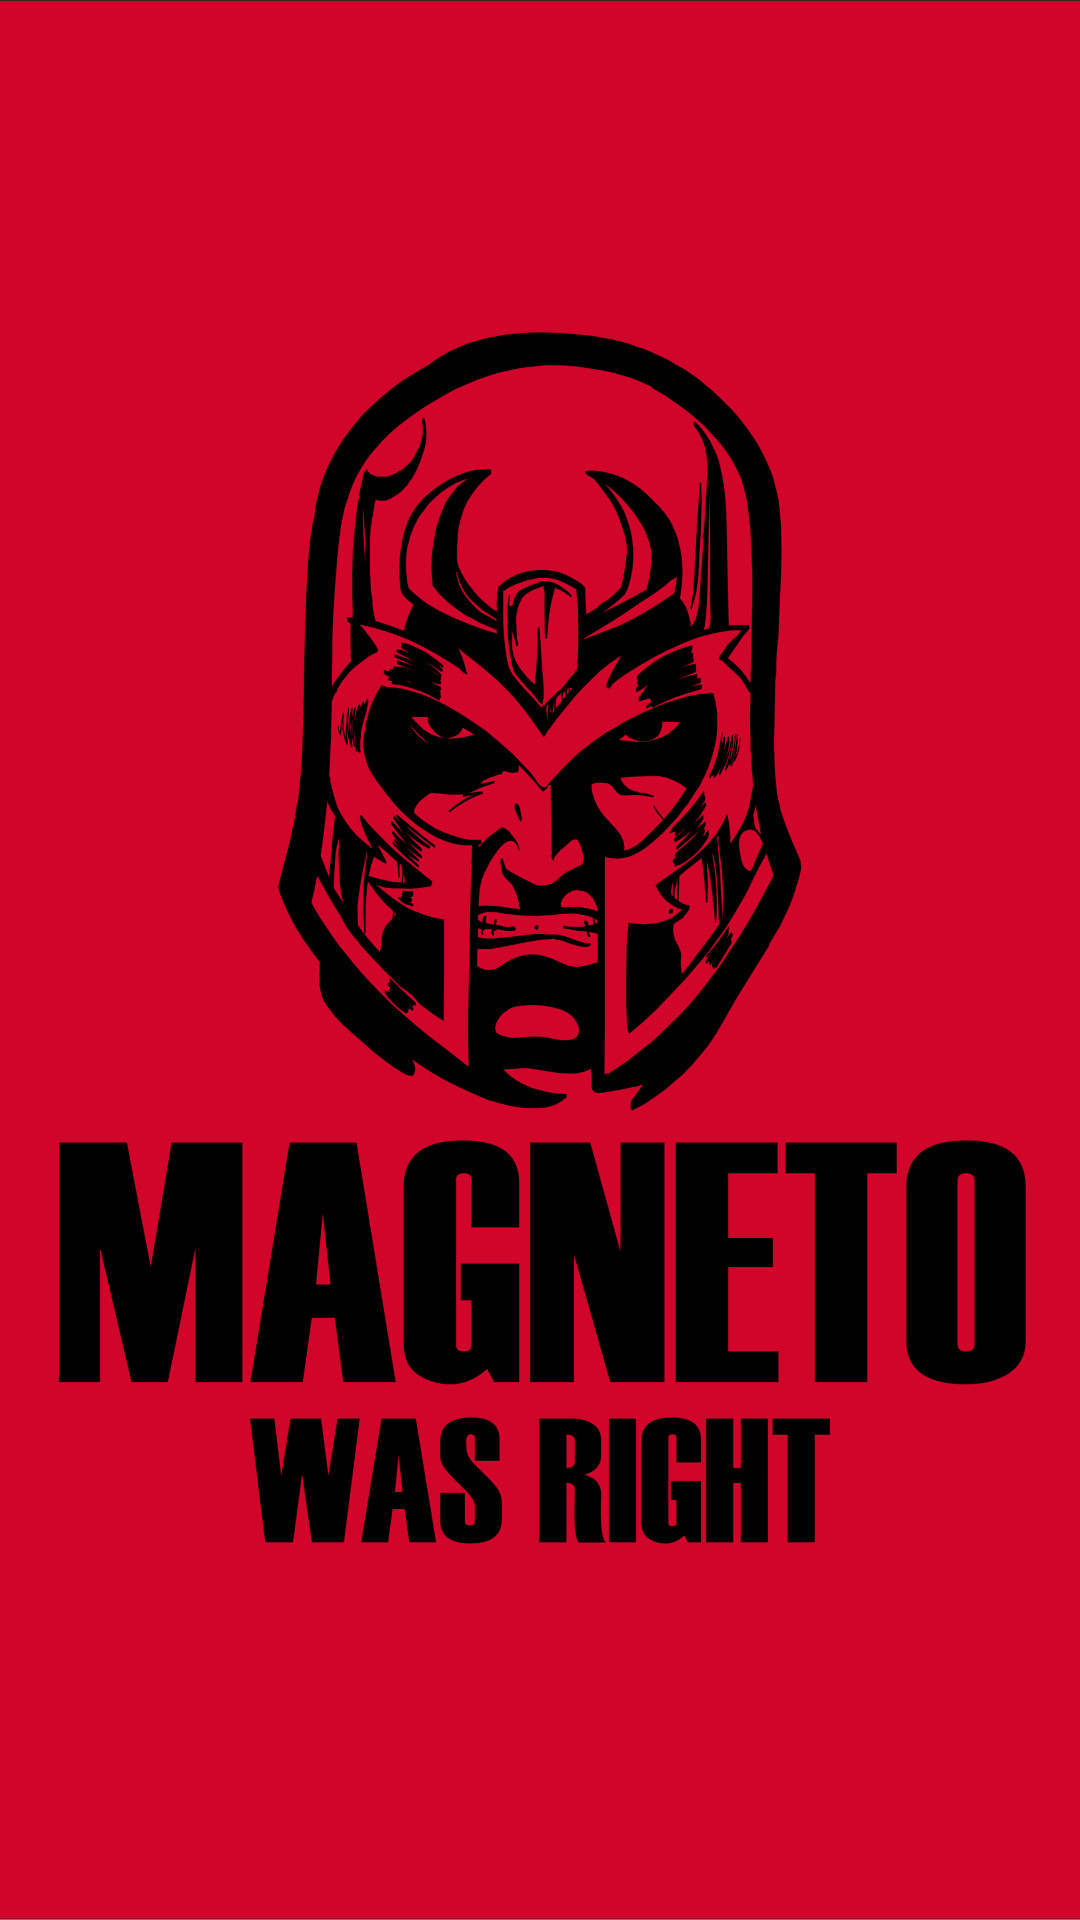 1920x1080 Magneto Wallpapers 25